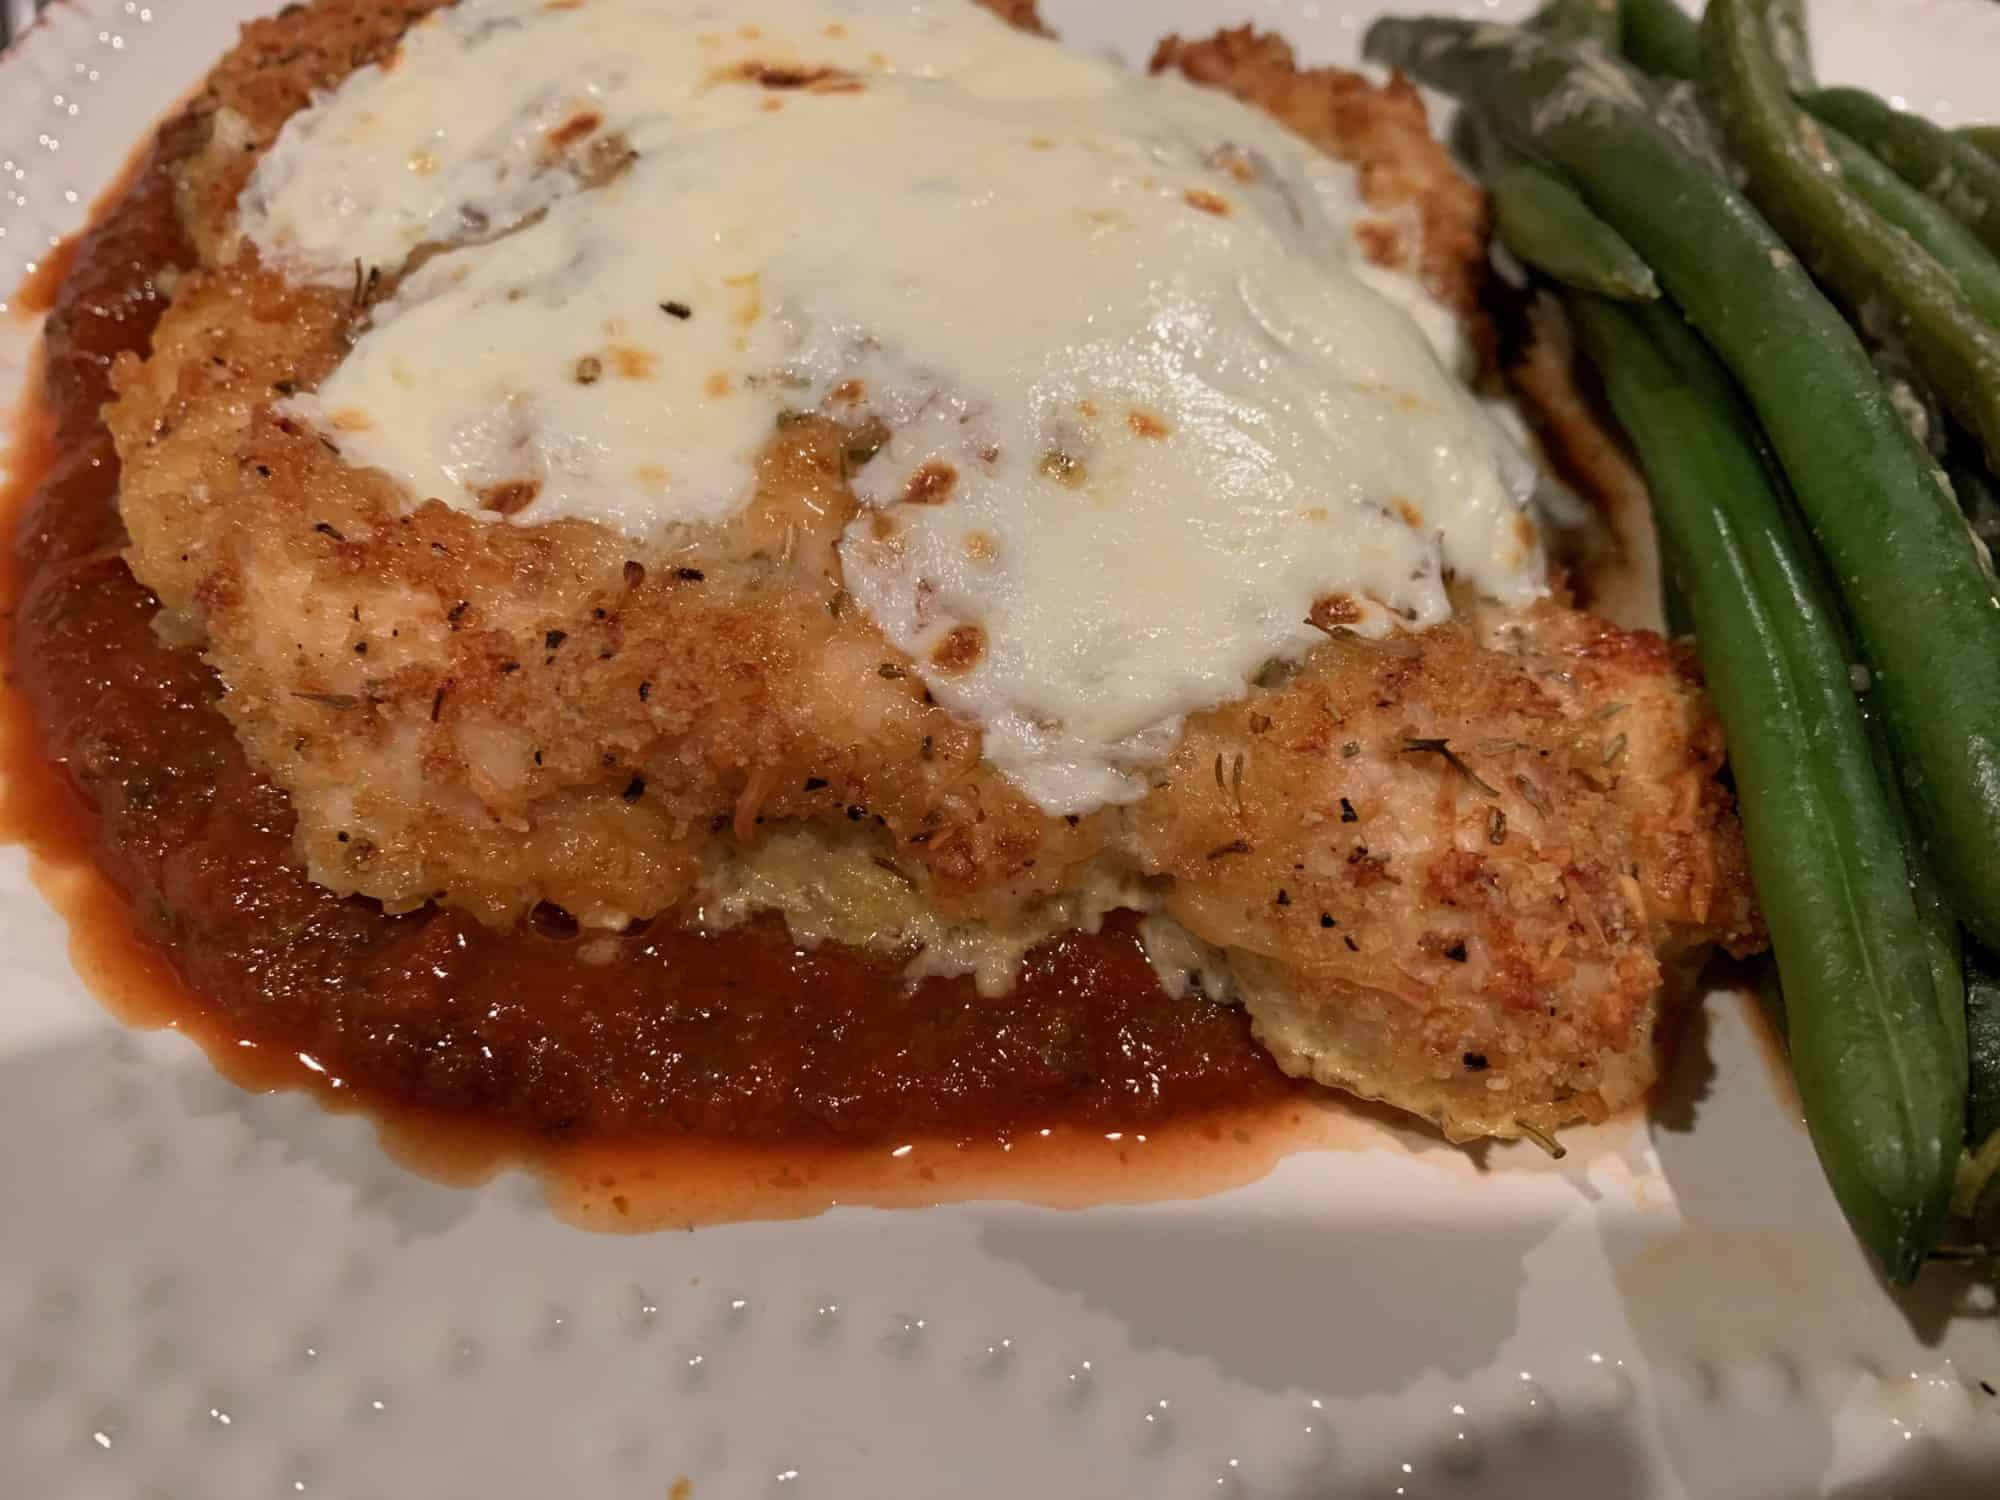 Keto friendly, low carb chicken